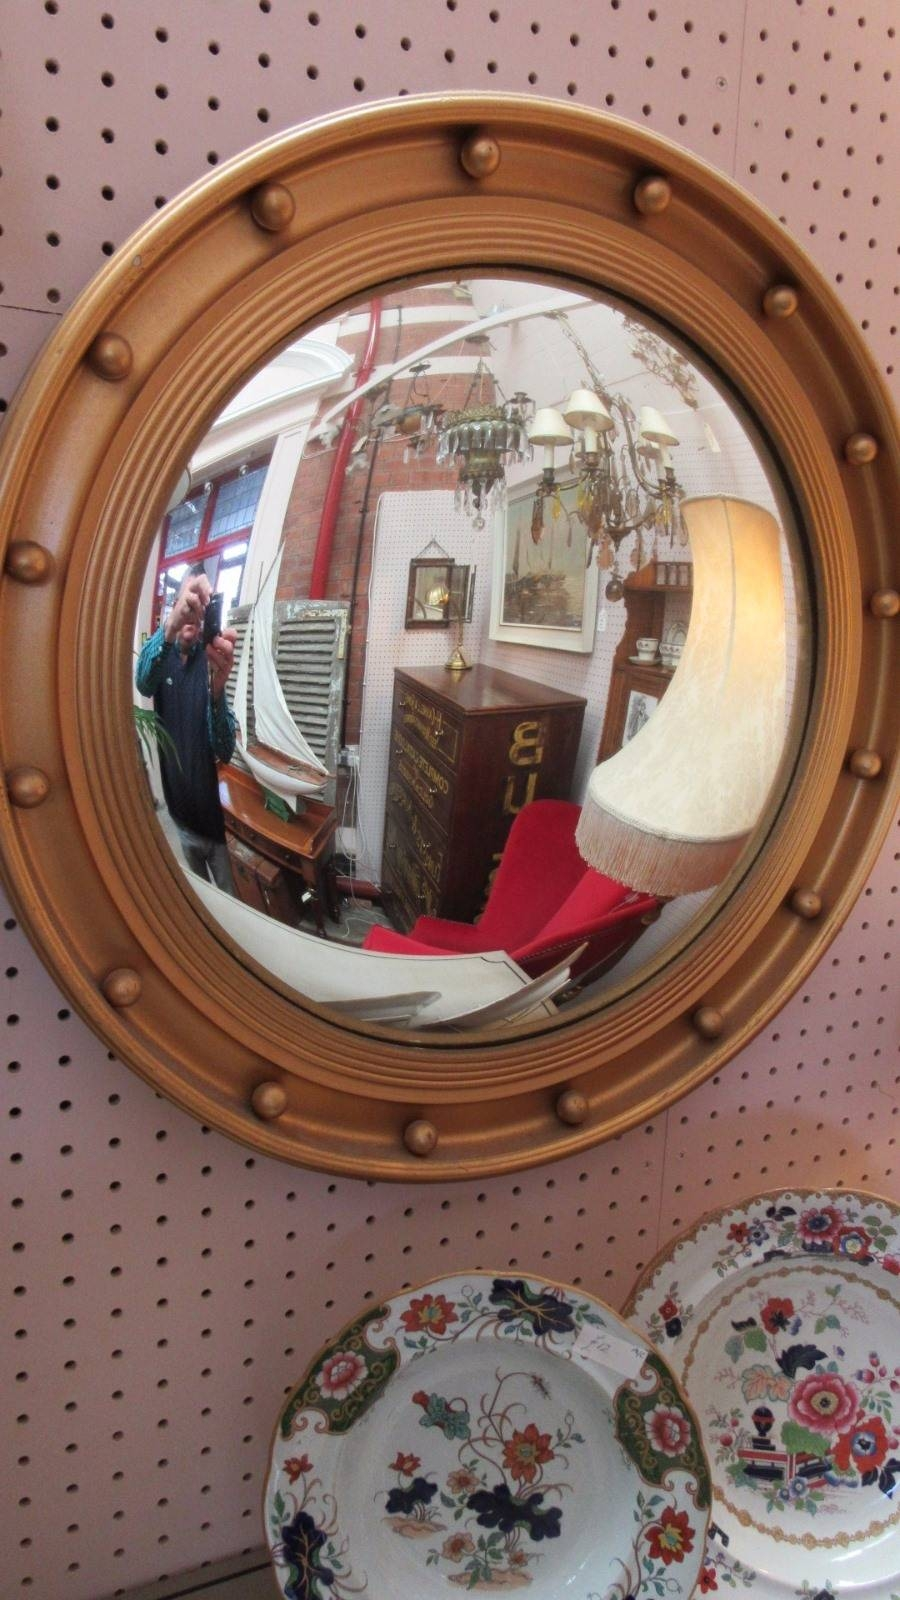 Wall Ideas: Convex Wall Mirror Photo. Design Decor. Large Round intended for Round Convex Wall Mirrors (Image 12 of 15)